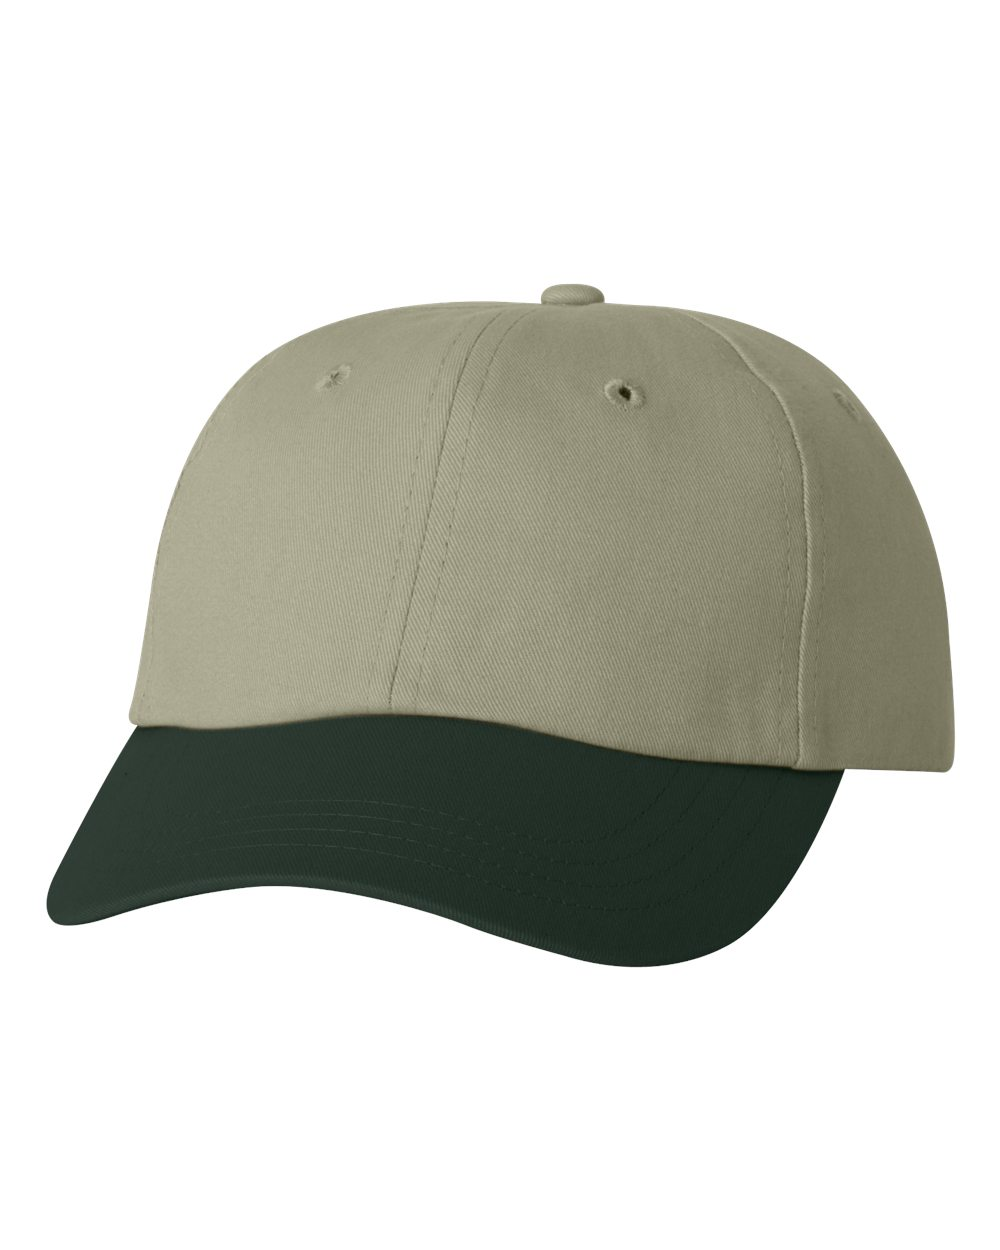 click to view Khaki/Forest